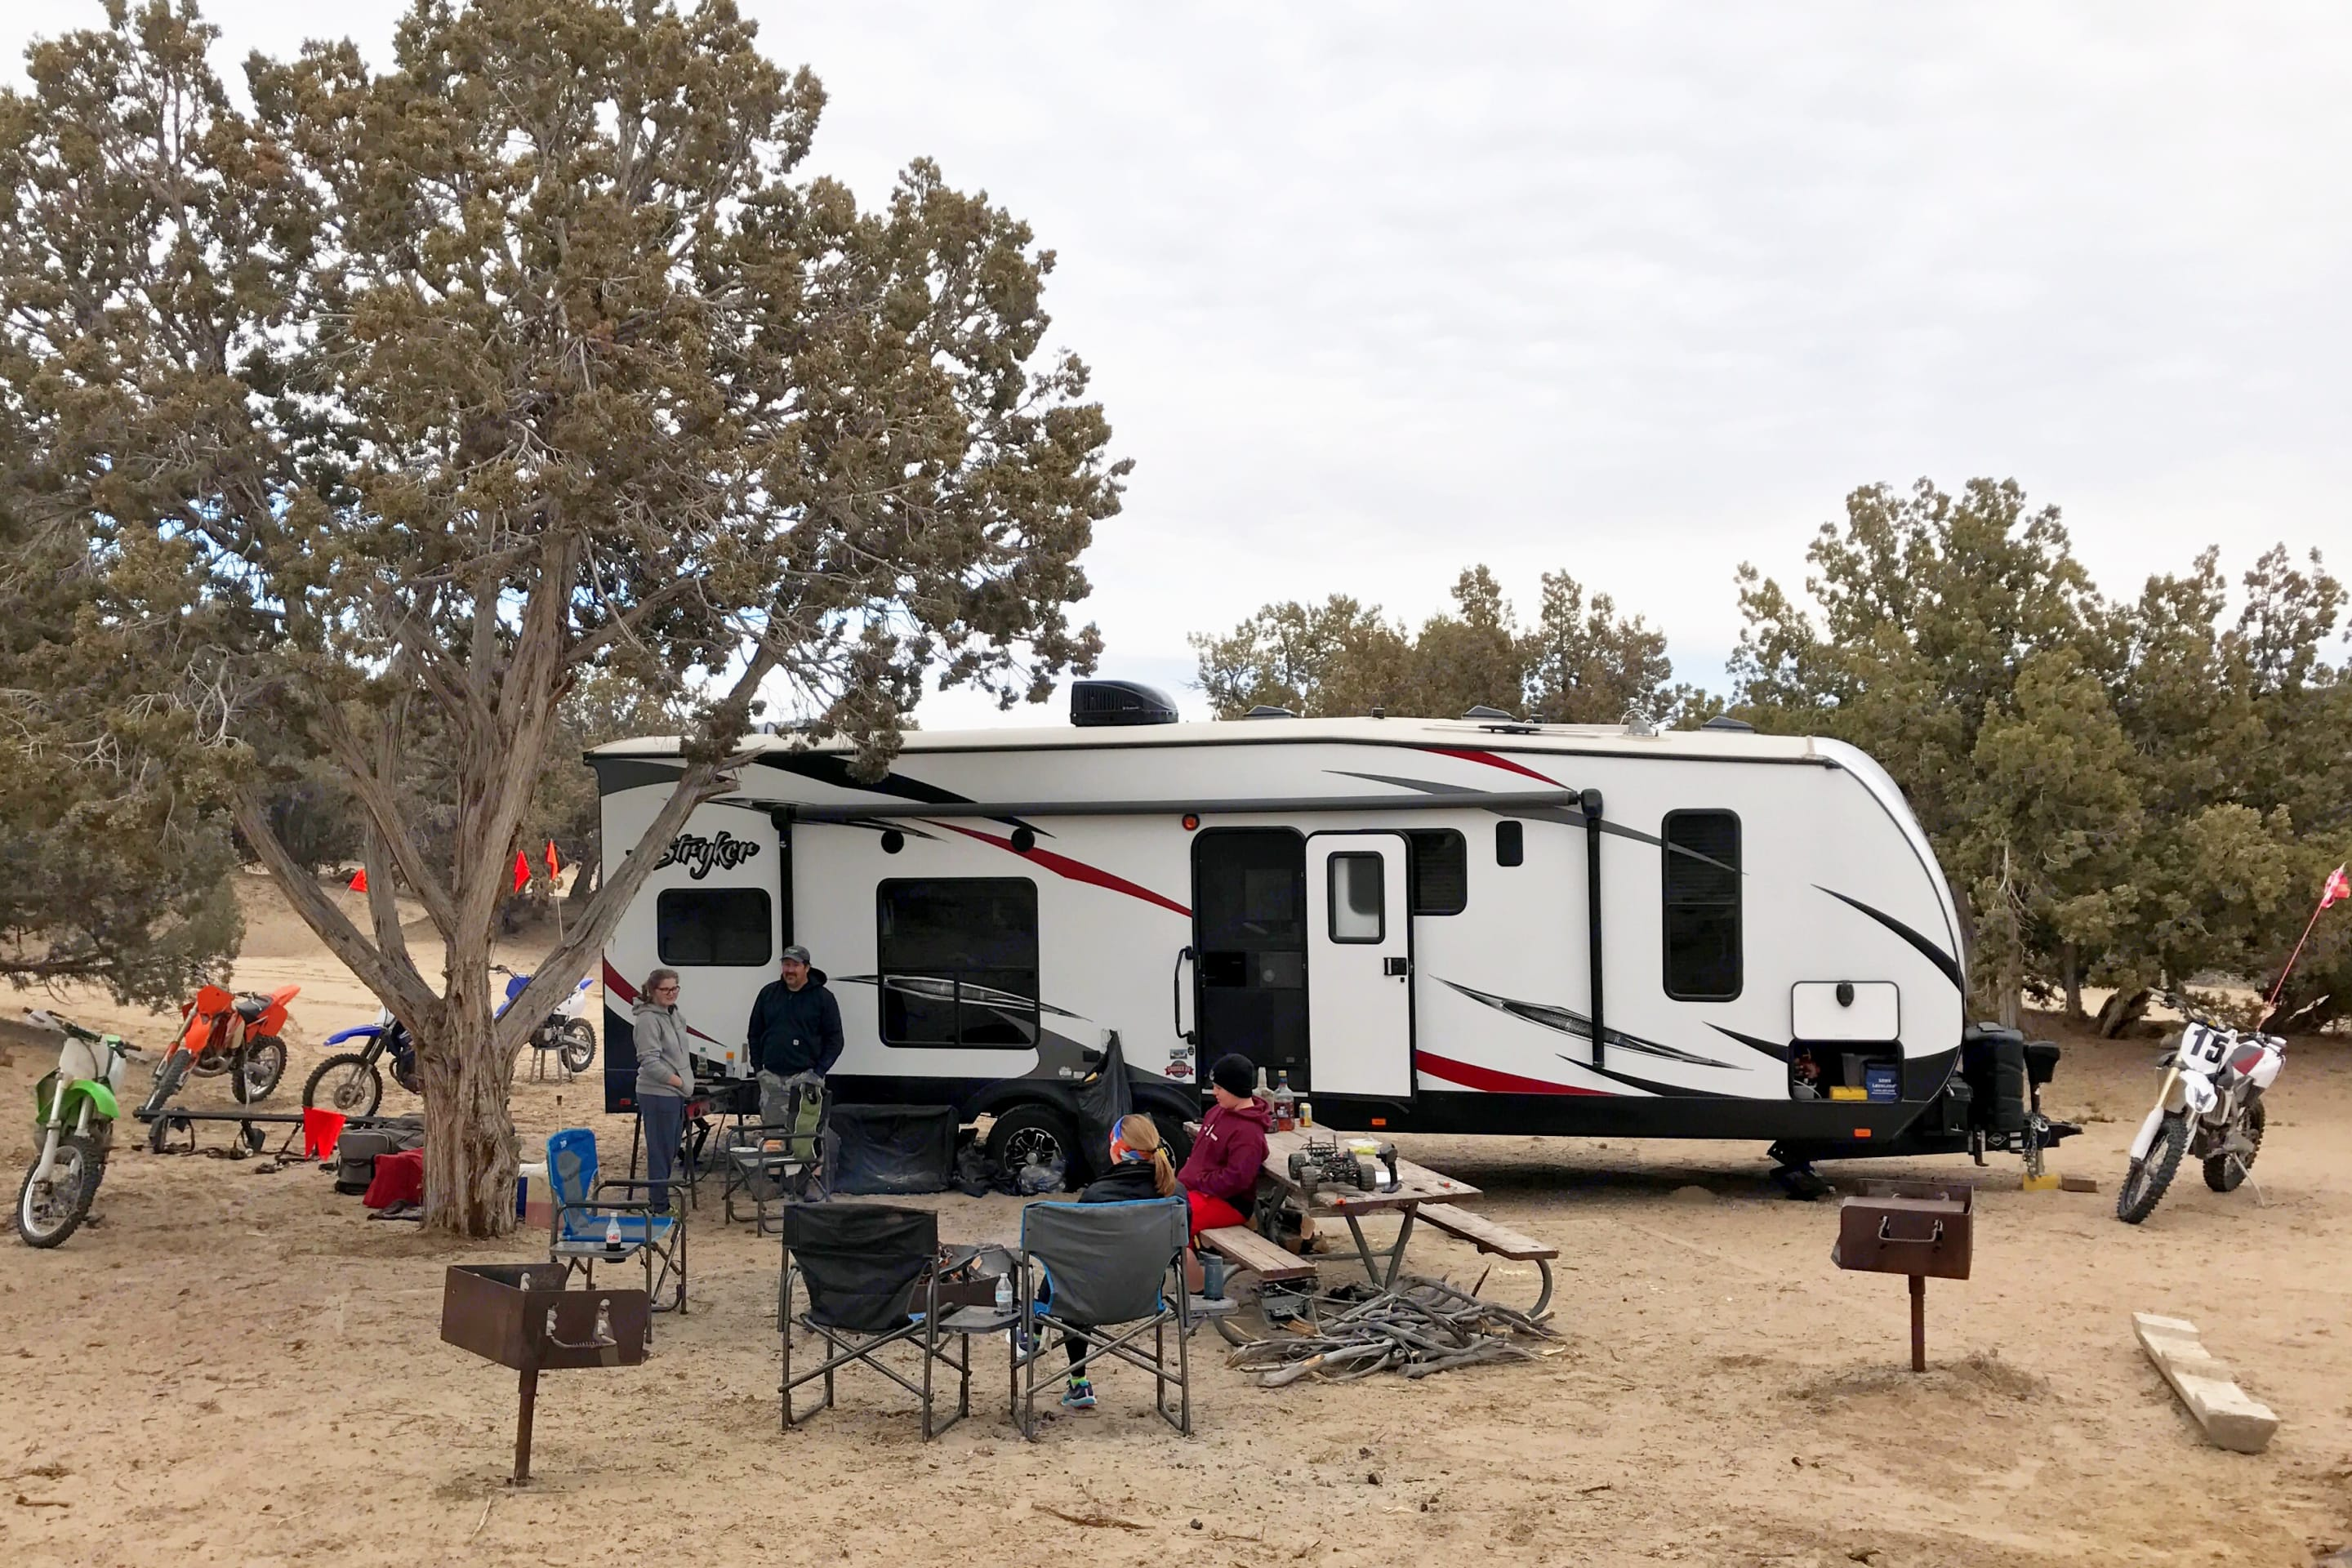 Head out to Little Sahara for some fun in the dunes. Cruiser Rv Corp Stryker 2016